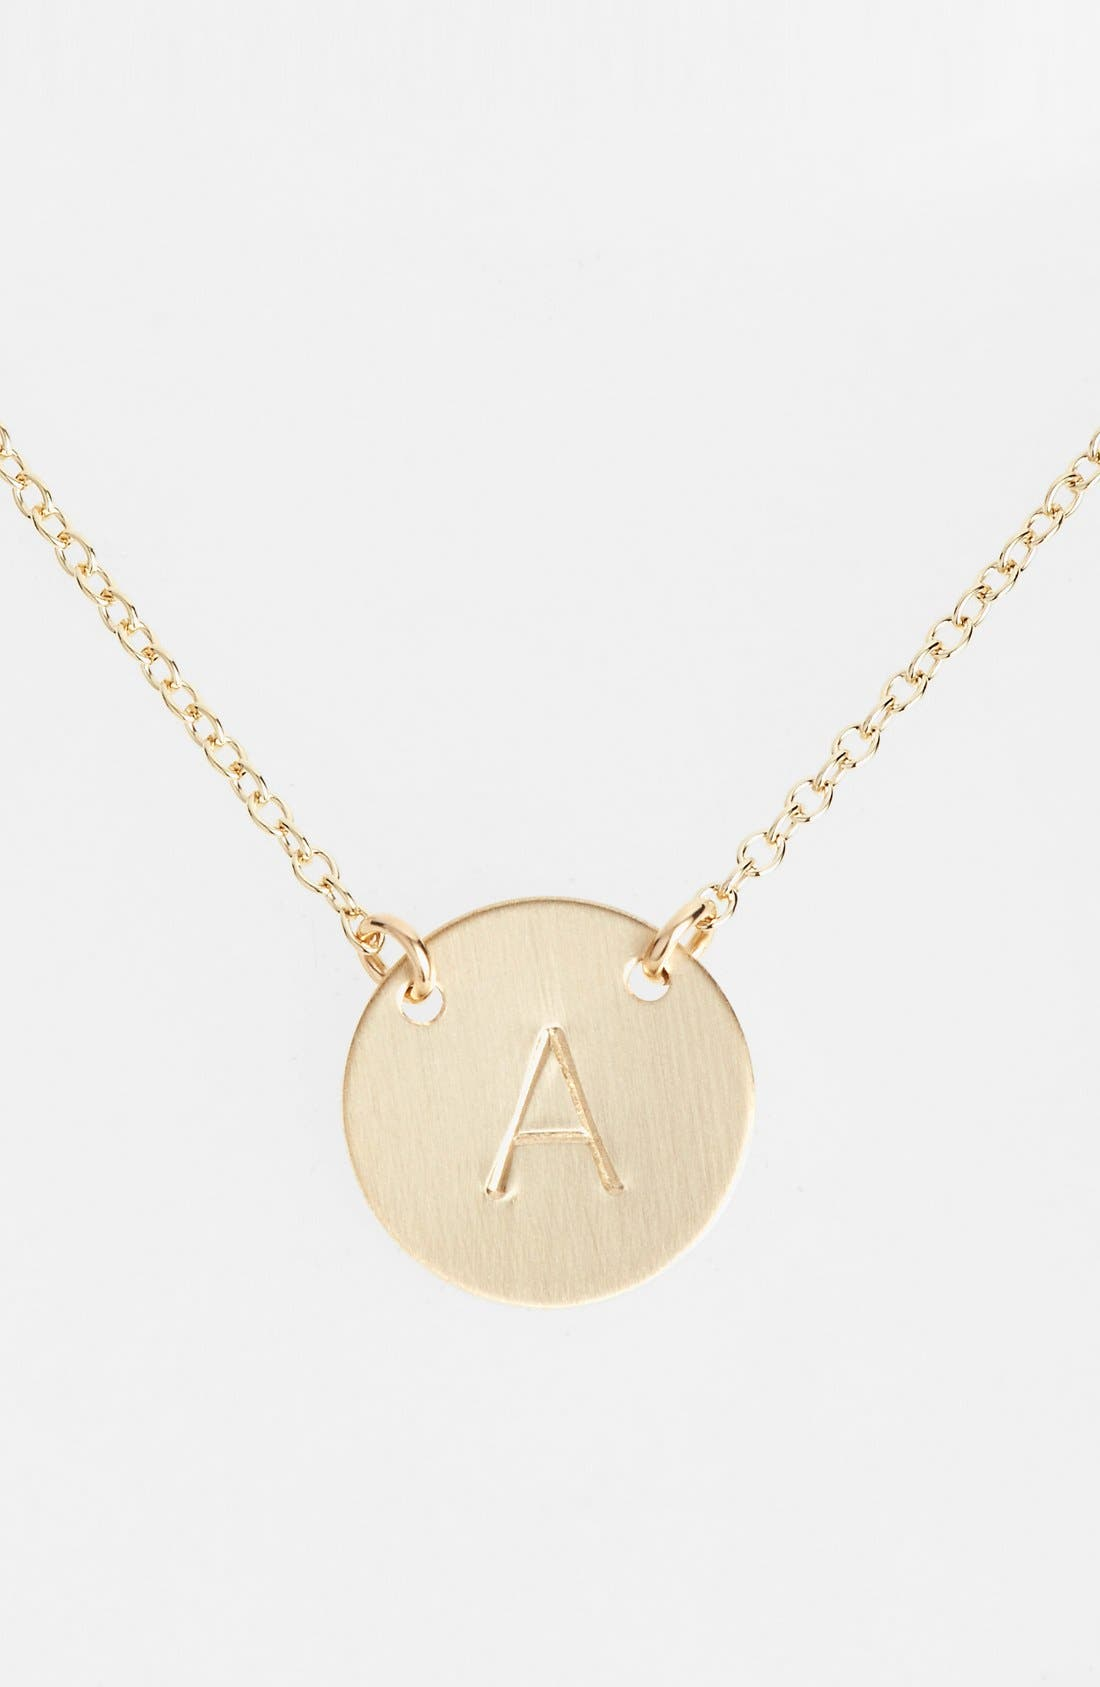 NASHELLE 14k-Gold Fill Anchored Initial Disc Necklace, Main, color, 14K GOLD FILL A